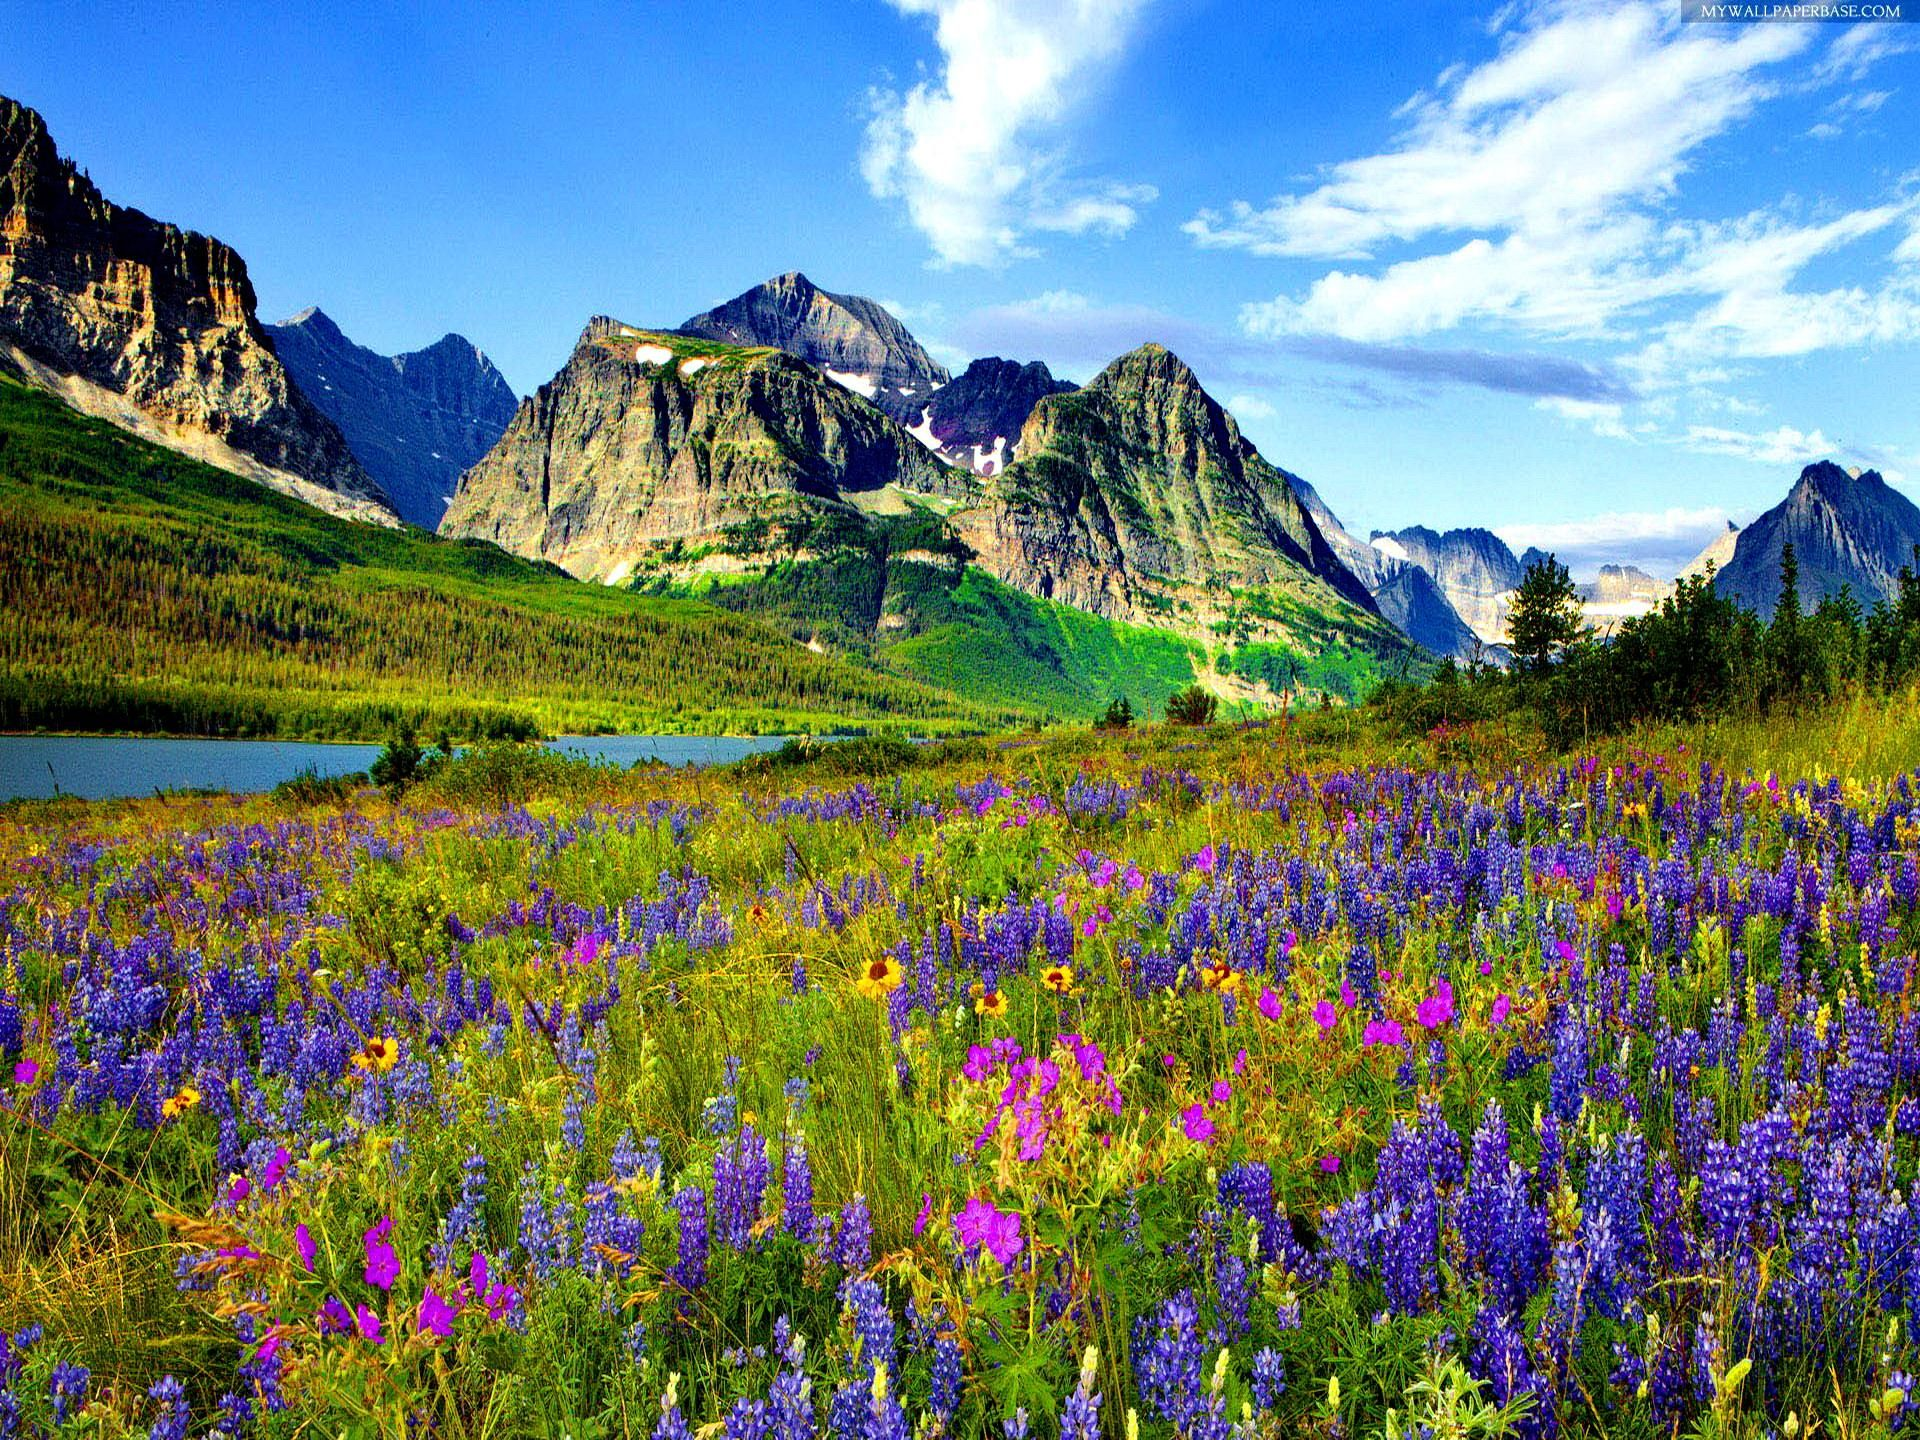 37 best pacific dogwood images on pinterest national parks mountain rocky wallpaper colorado flowers mountain flowers dhlflorist Choice Image